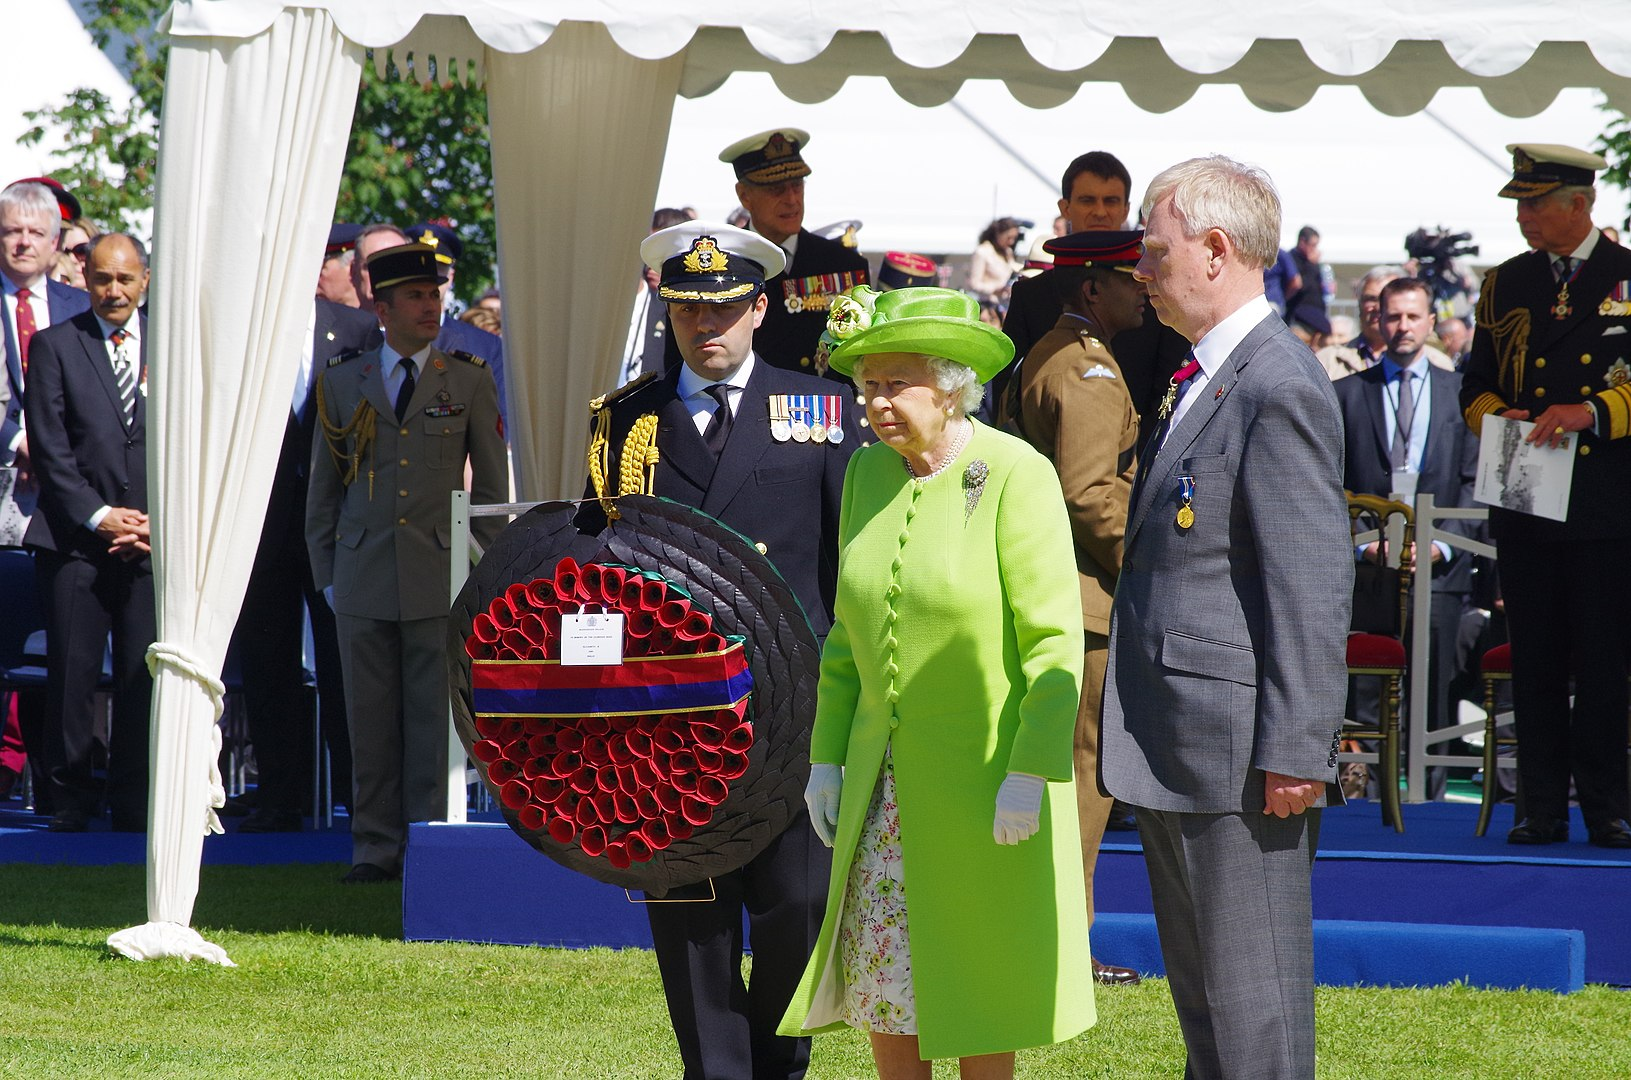 Queen Elizabeth II in France. D-Day Commemoration in Bayeux Cemetery - 6 June 2014 © UK in France - licence [CC BY 2.0] from Wikimedia Commons